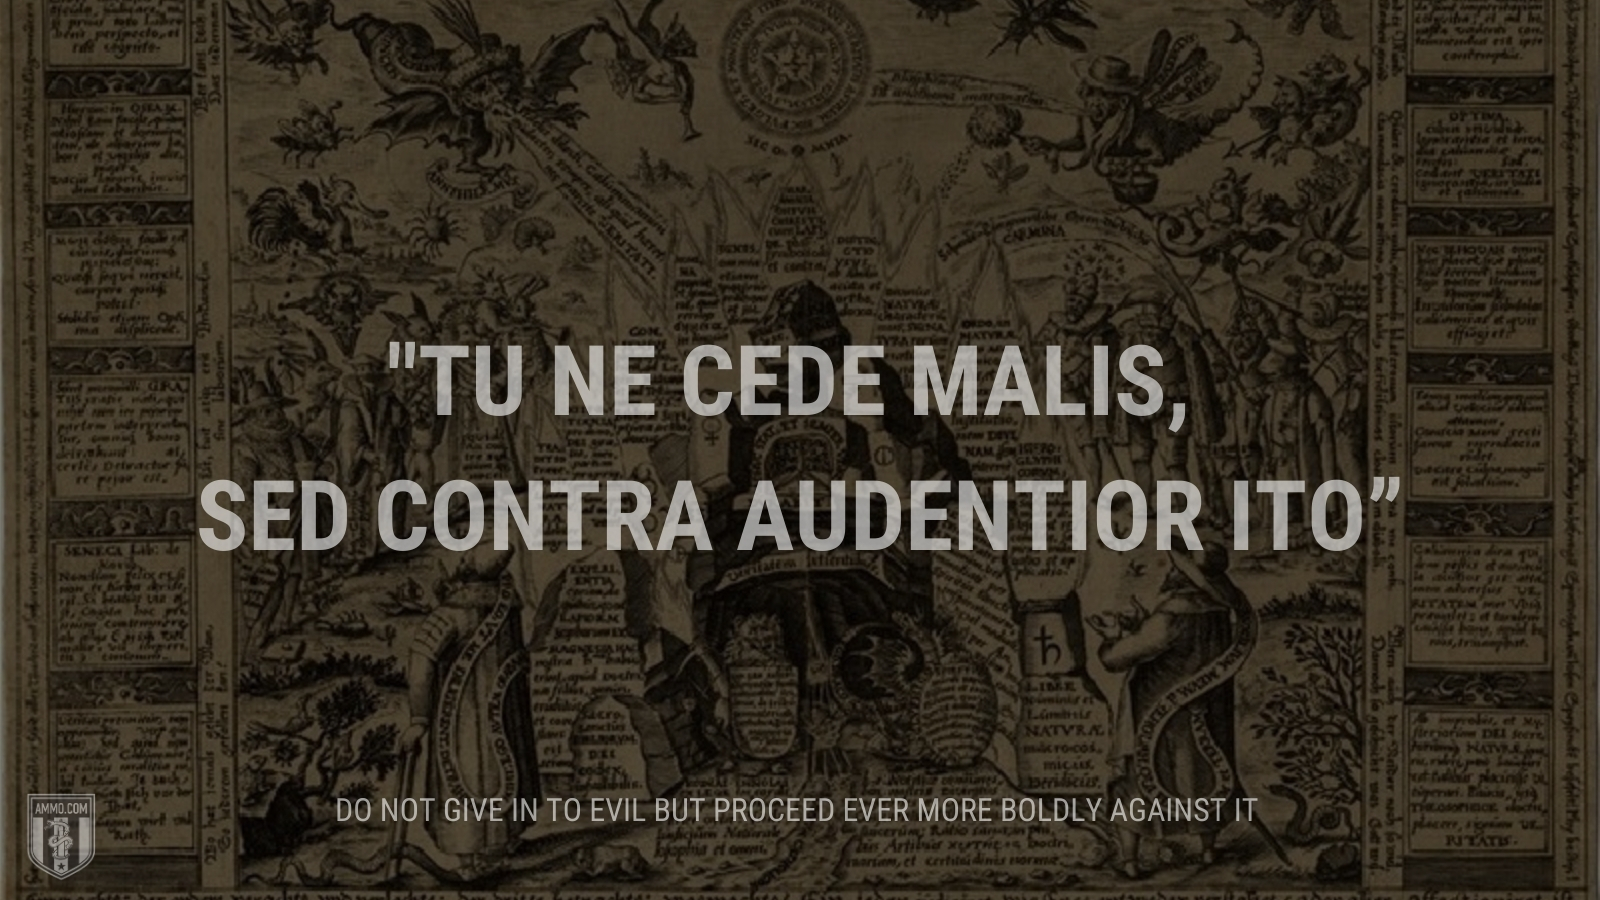 """""""Tu ne cede malis, sed contra audentior ito"""" - Do not give in to evil but proceed ever more boldly against it"""